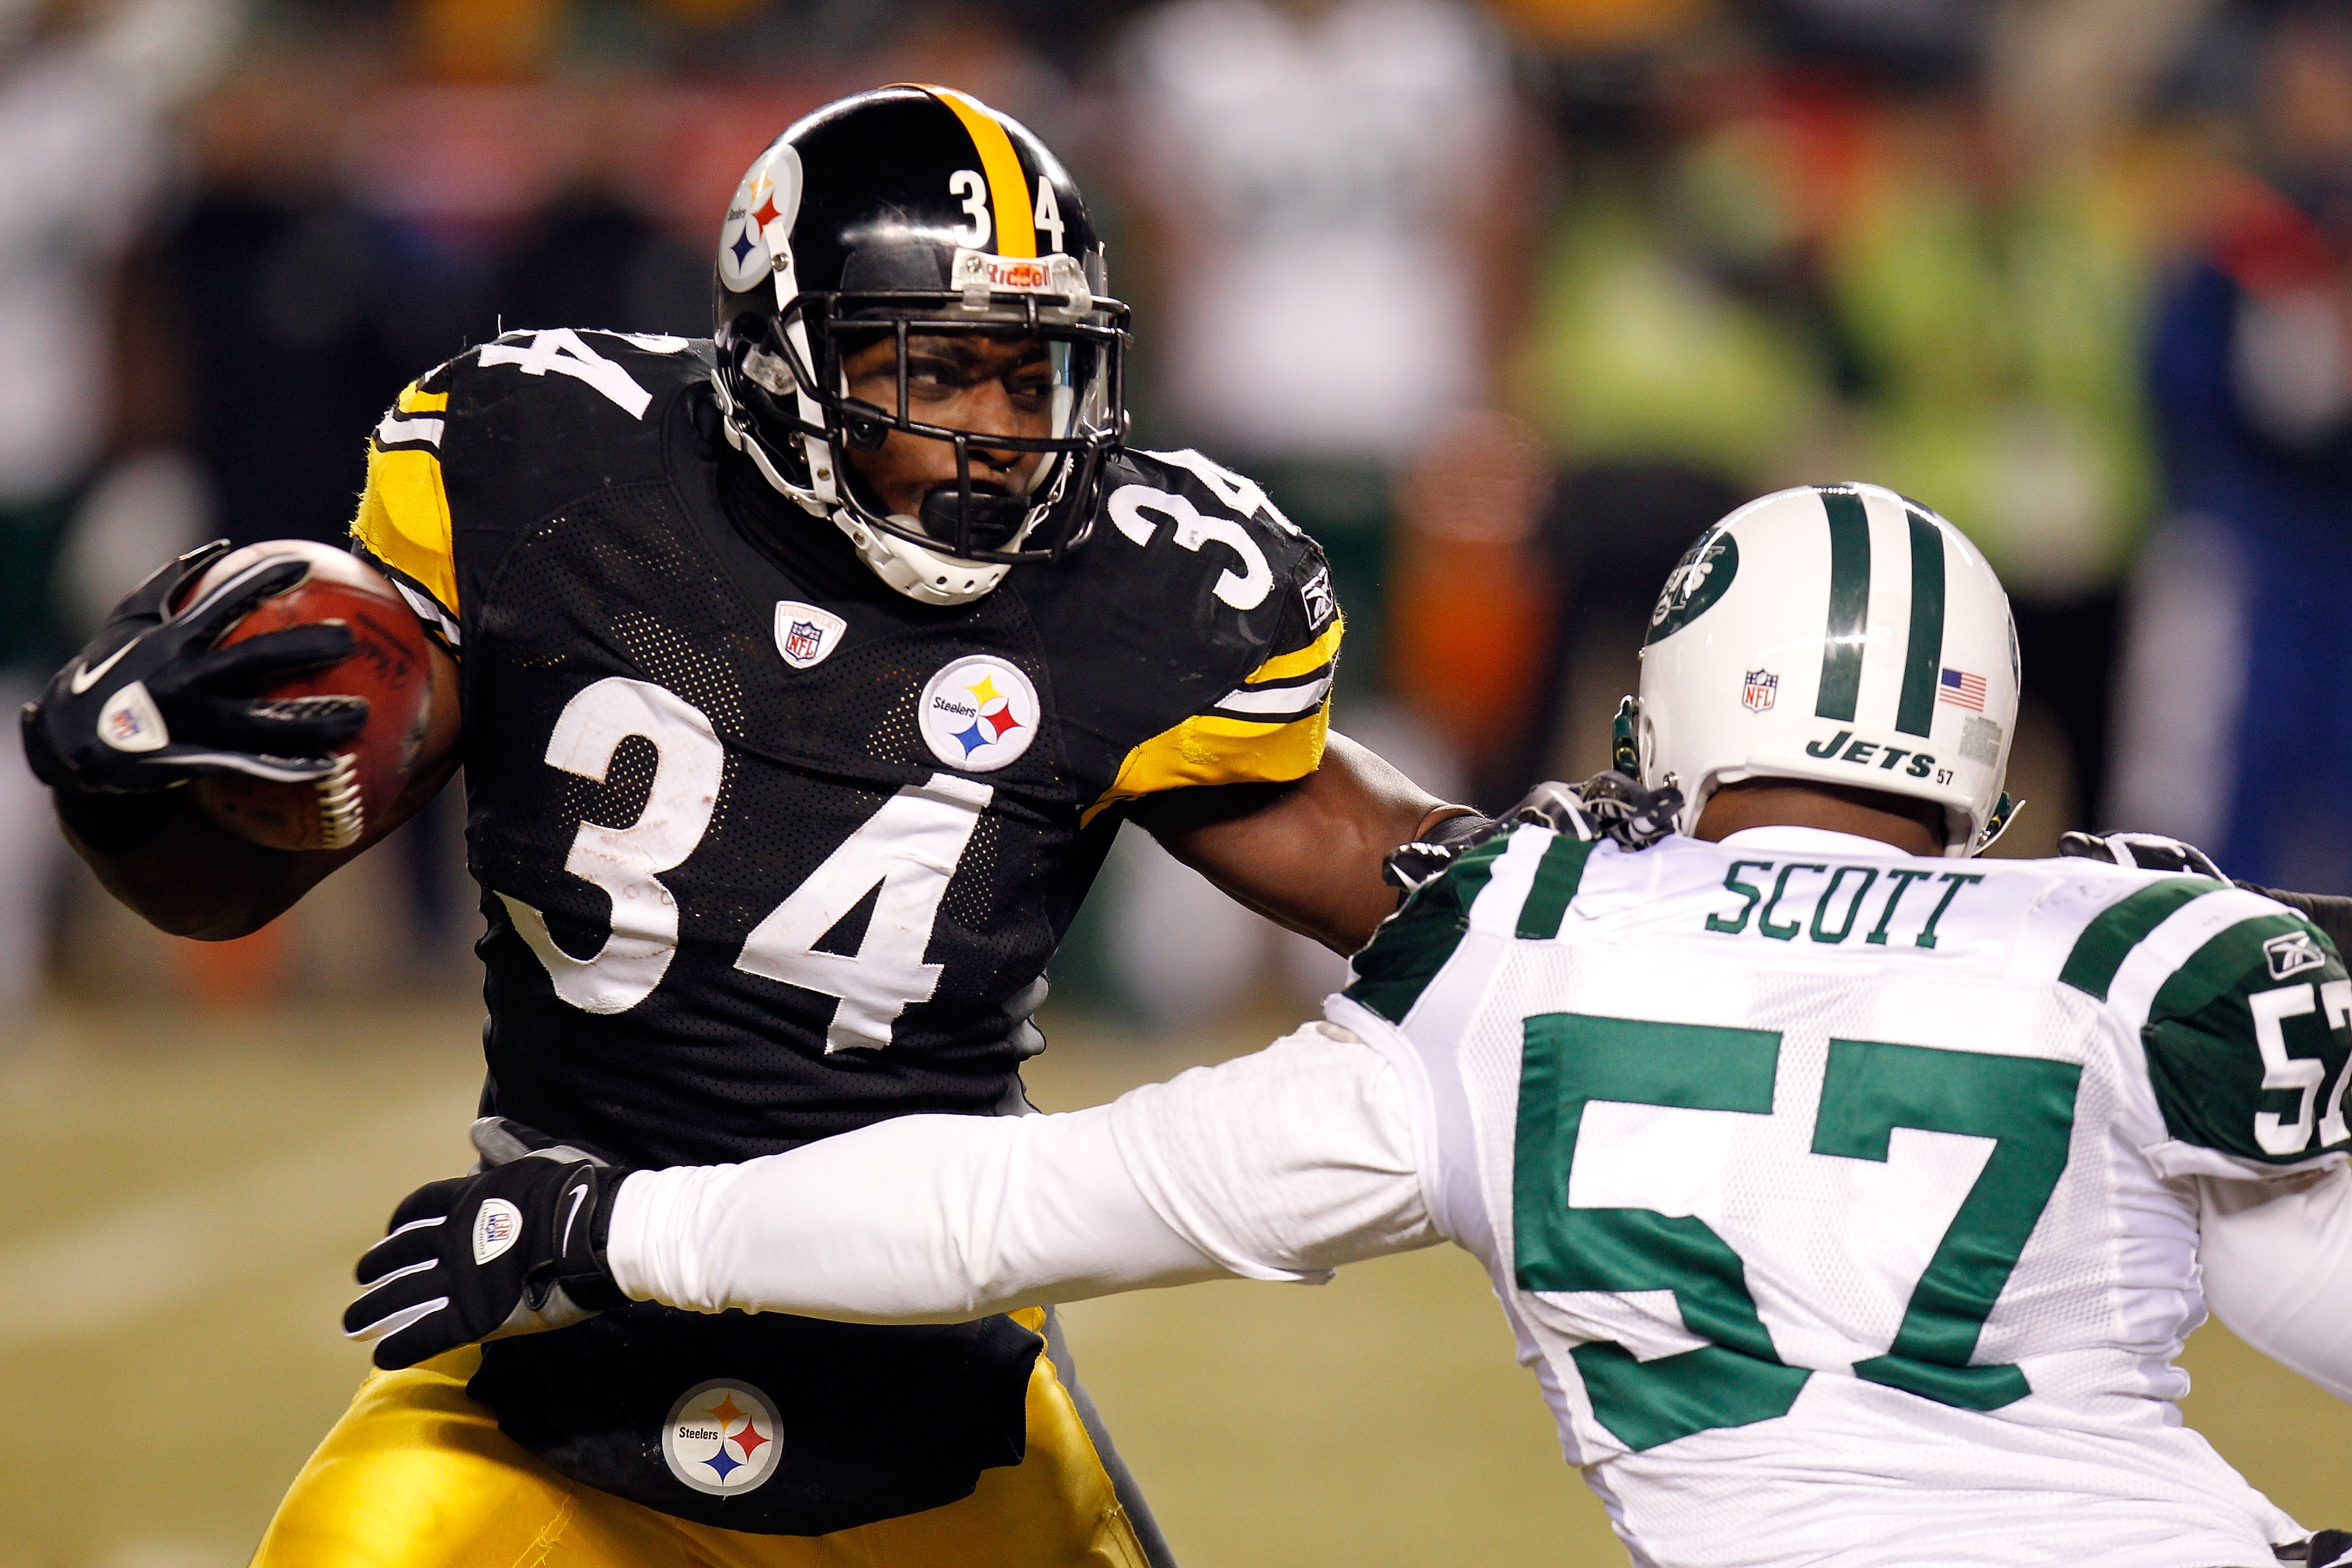 PITTSBURGH, PA - JANUARY 23:  Rashard Mendenhall #34 of the Pittsburgh Steelers runs down field against Bart Scott #57 of the New York Jets during the 2011 AFC Championship game at Heinz Field on January 23, 2011 in Pittsburgh, Pennsylvania.  (Photo by Gr